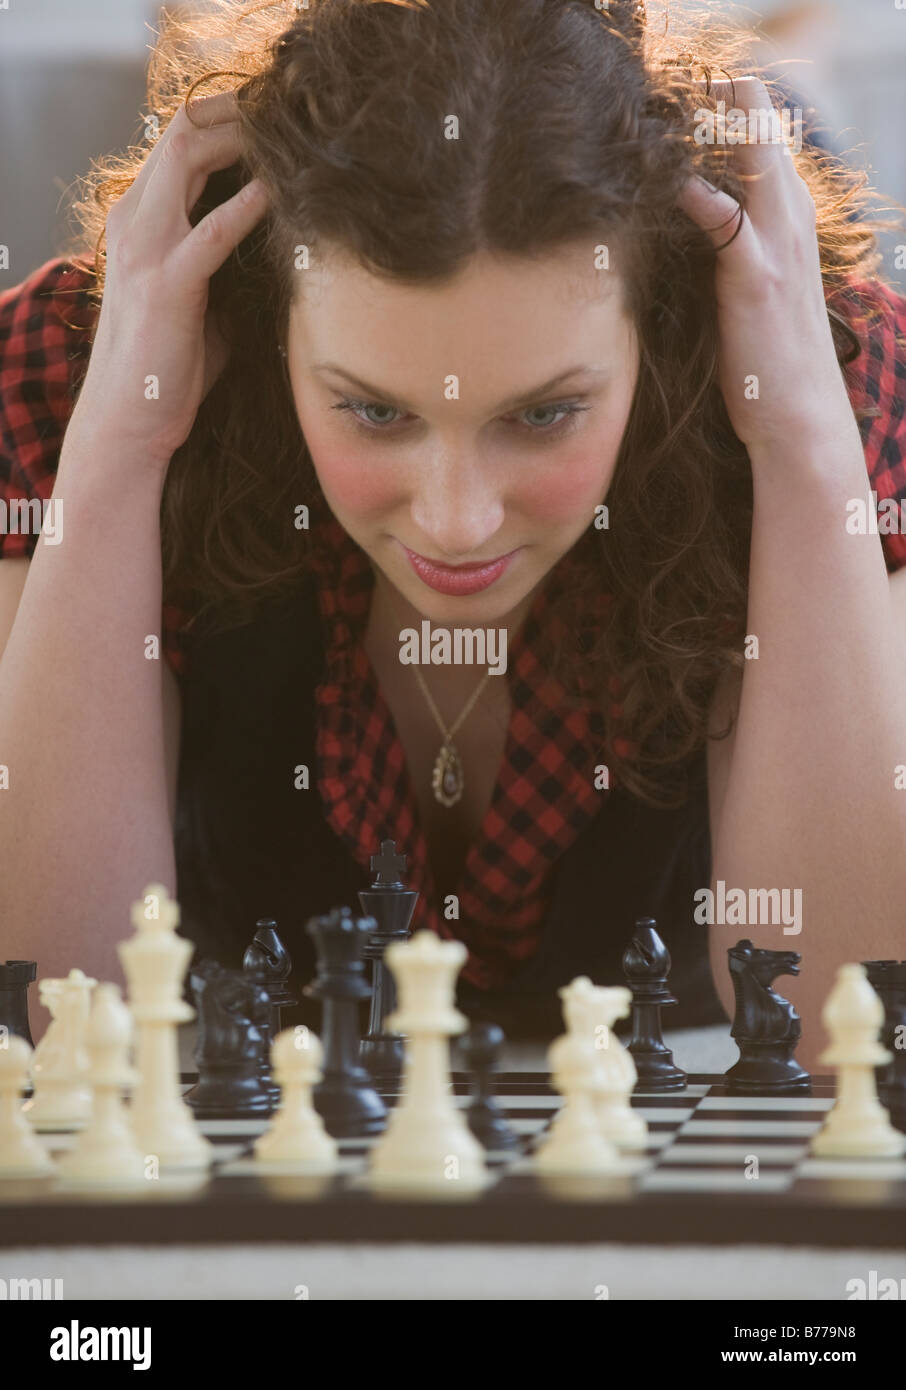 Close up of woman looking down chessboard - Stock Image